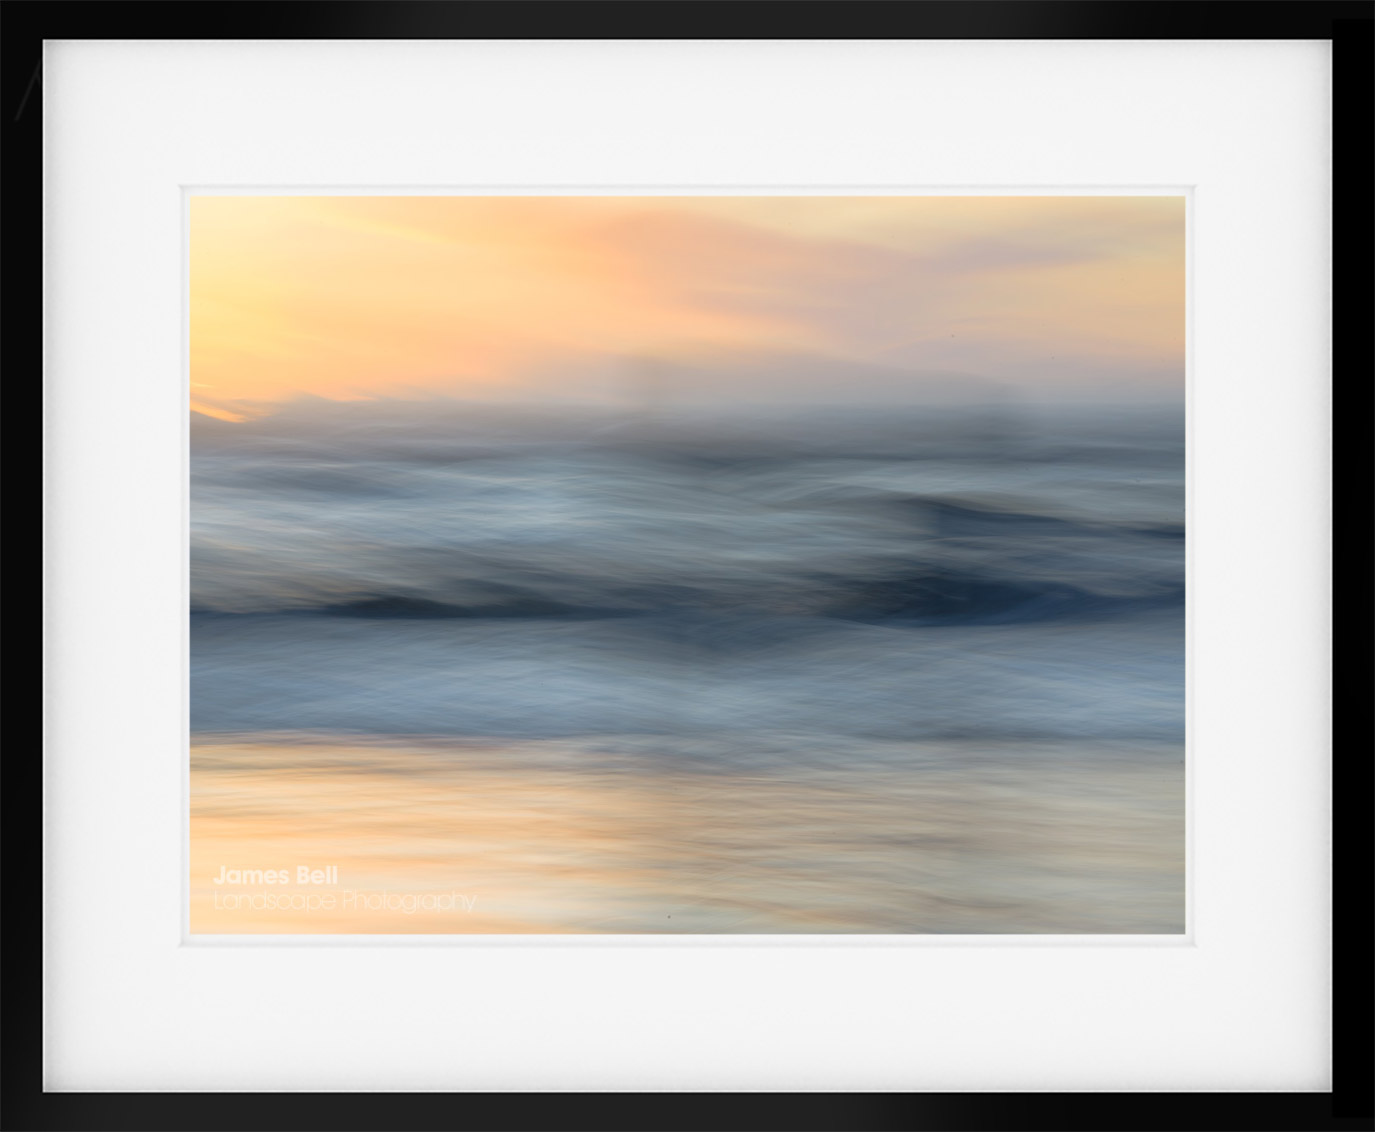 Abstract Landscape Photography Print from Crosby Beach